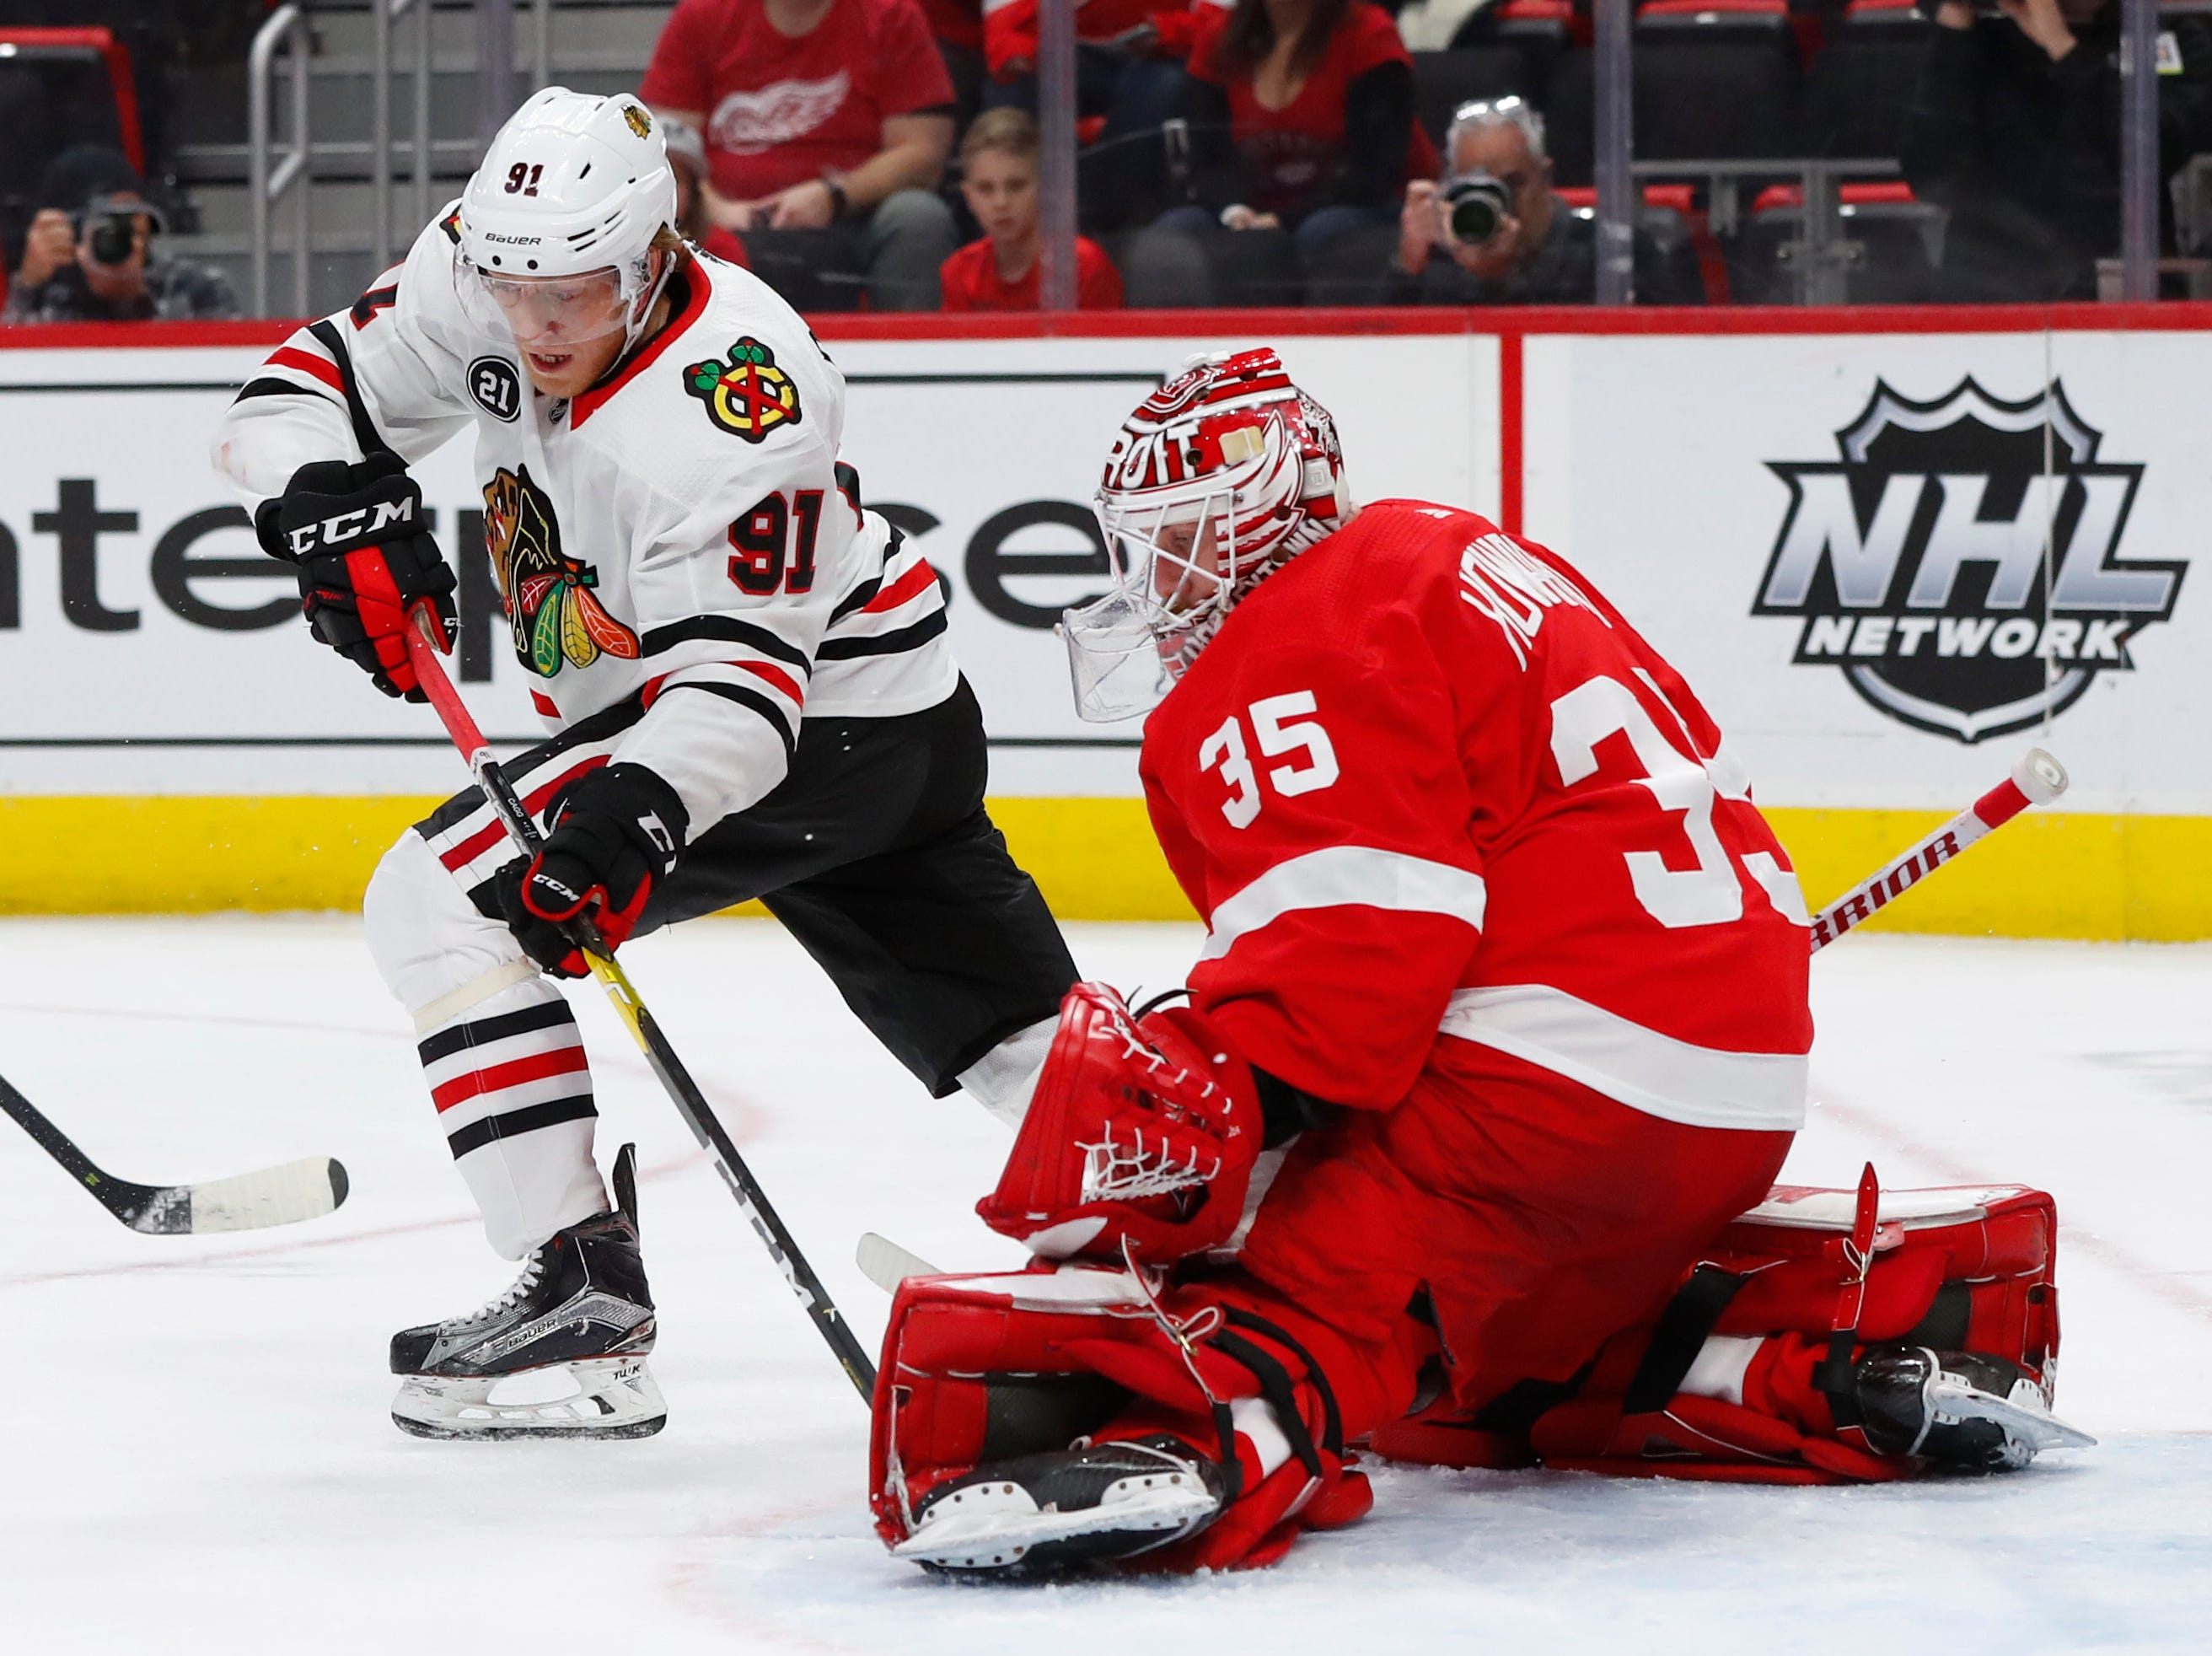 Detroit Red Wings goaltender Jimmy Howard, right, stops a Chicago Blackhawks center Drake Caggiula, left, shot in the first period of an NHL hockey game Wednesday, Feb. 20, 2019, in Detroit.